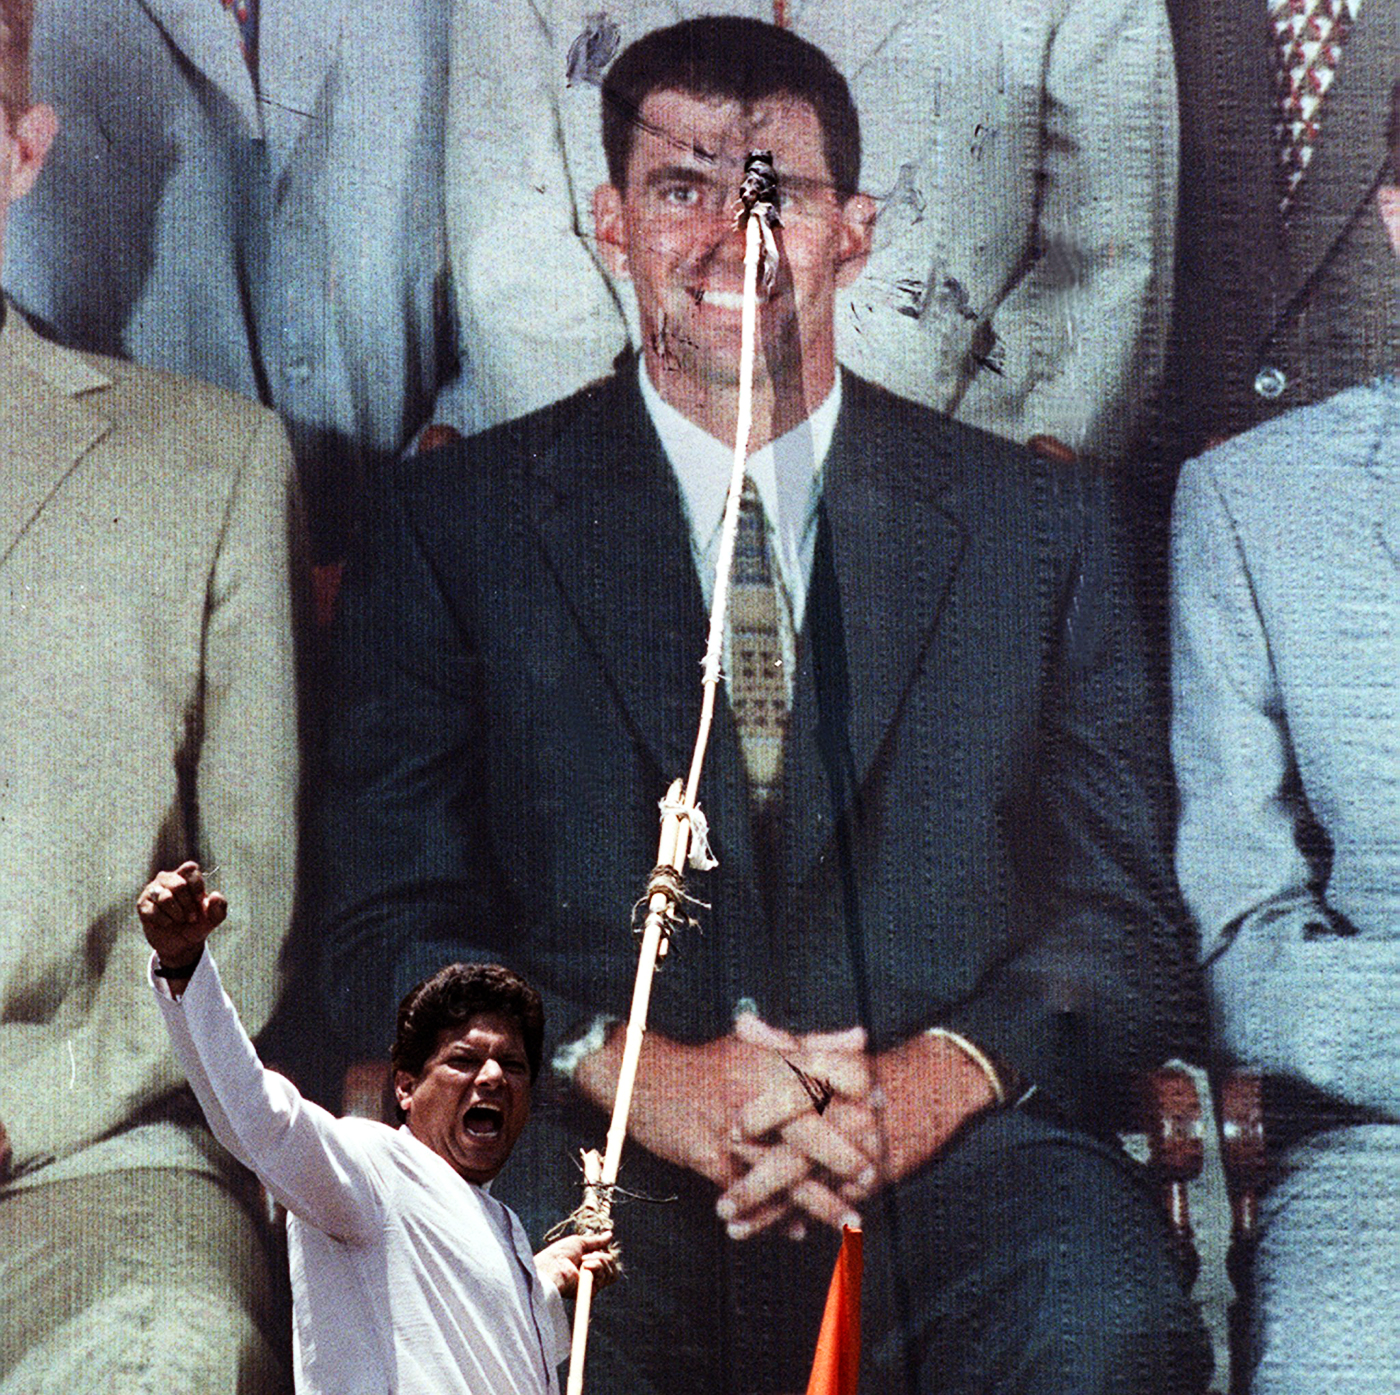 A man applies paint to a billboard image of Hansie Cronje as a sign of protest